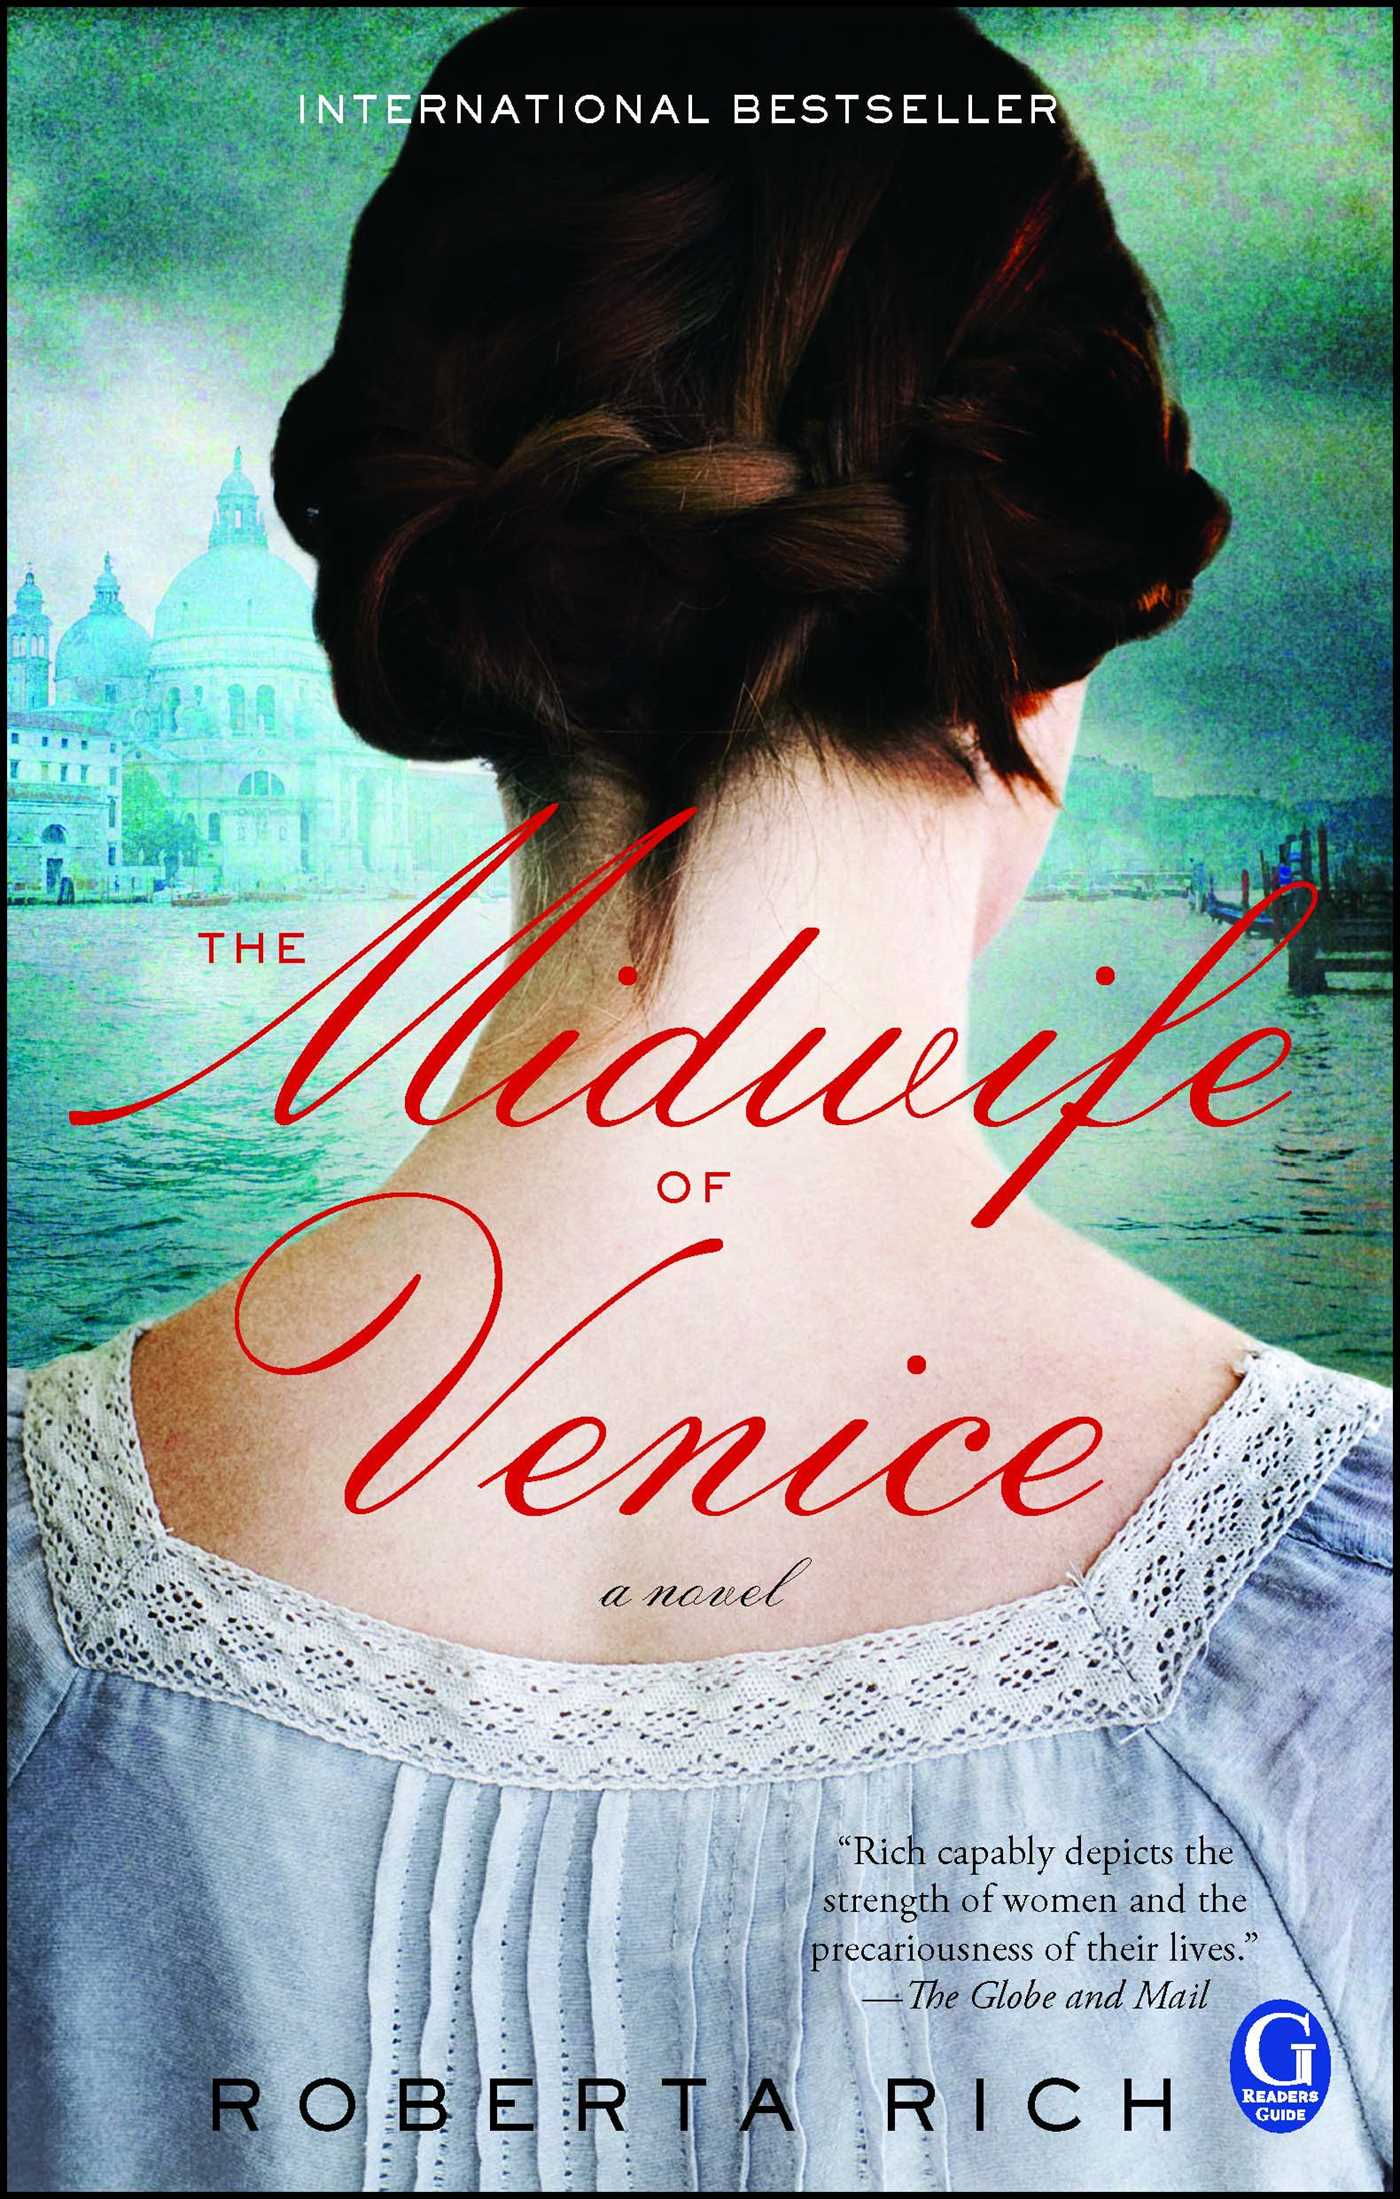 The midwife of venice 9781451657487 hr